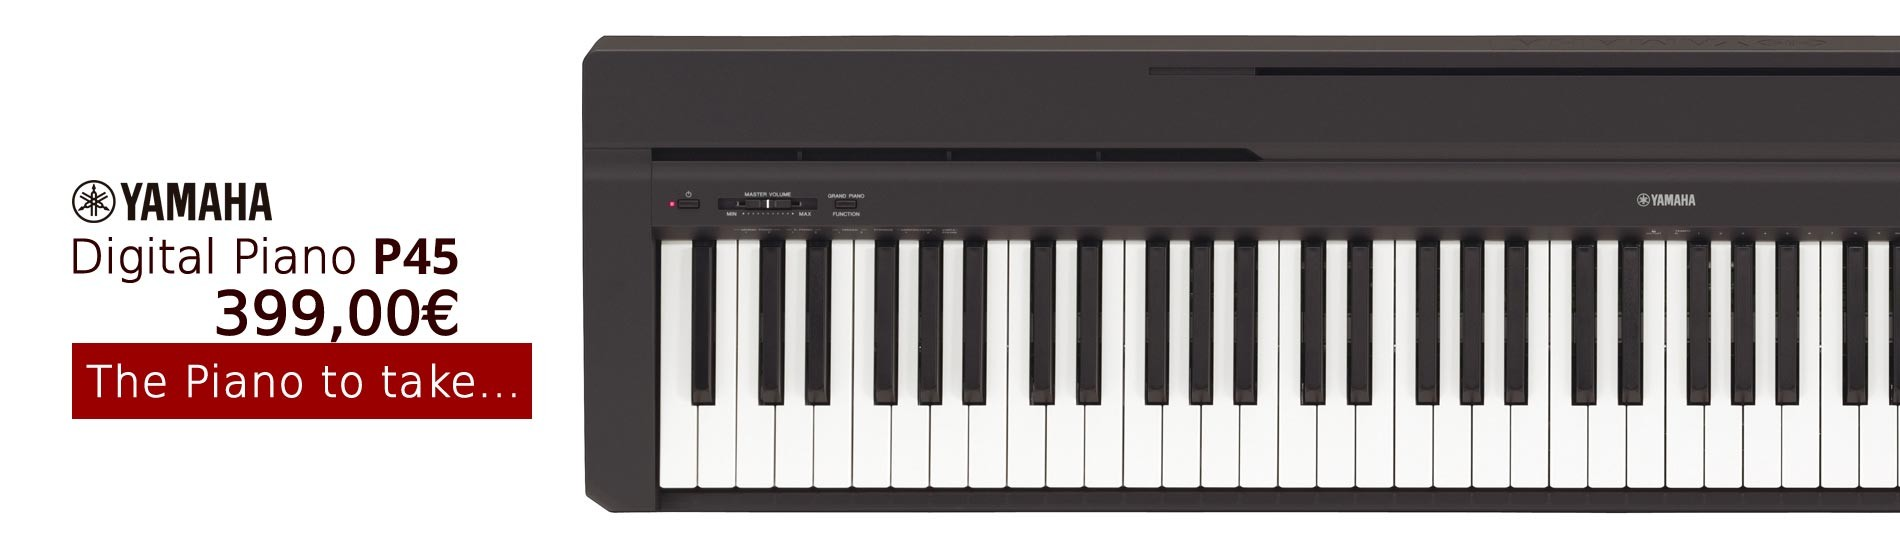 Digital Piano P-45 The Piano to take...